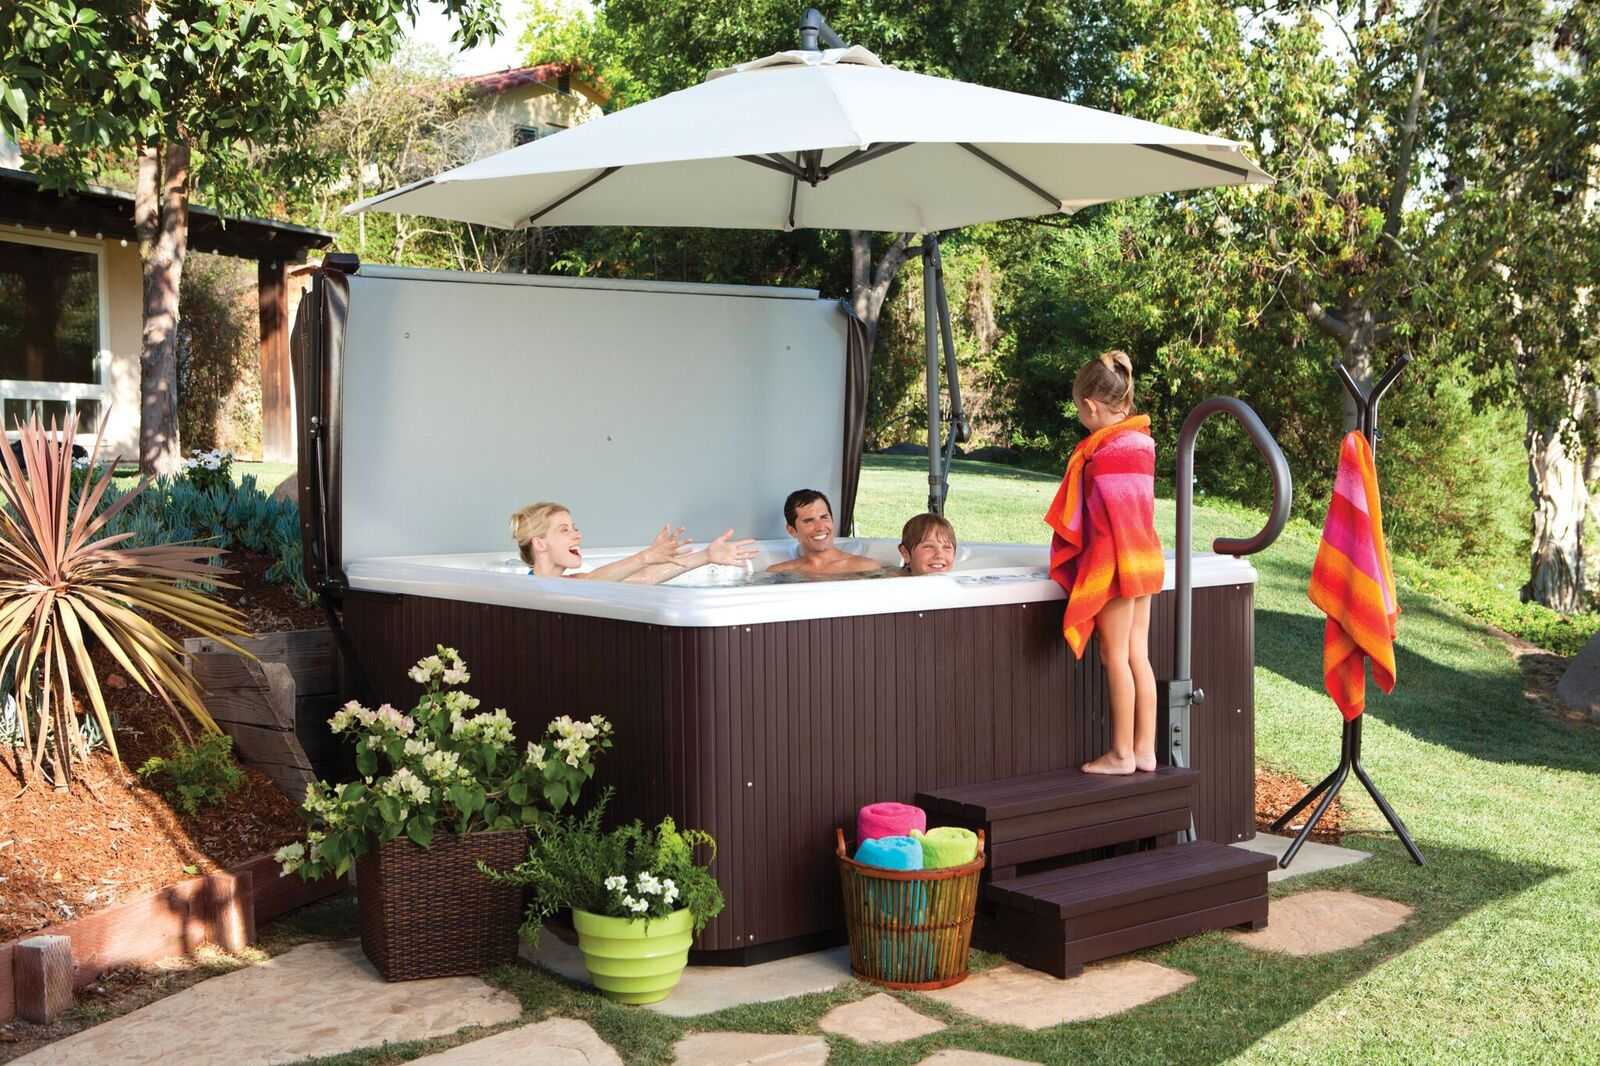 Hot Tubs: A Great Investment for Families with Kids - Backyard Oasis